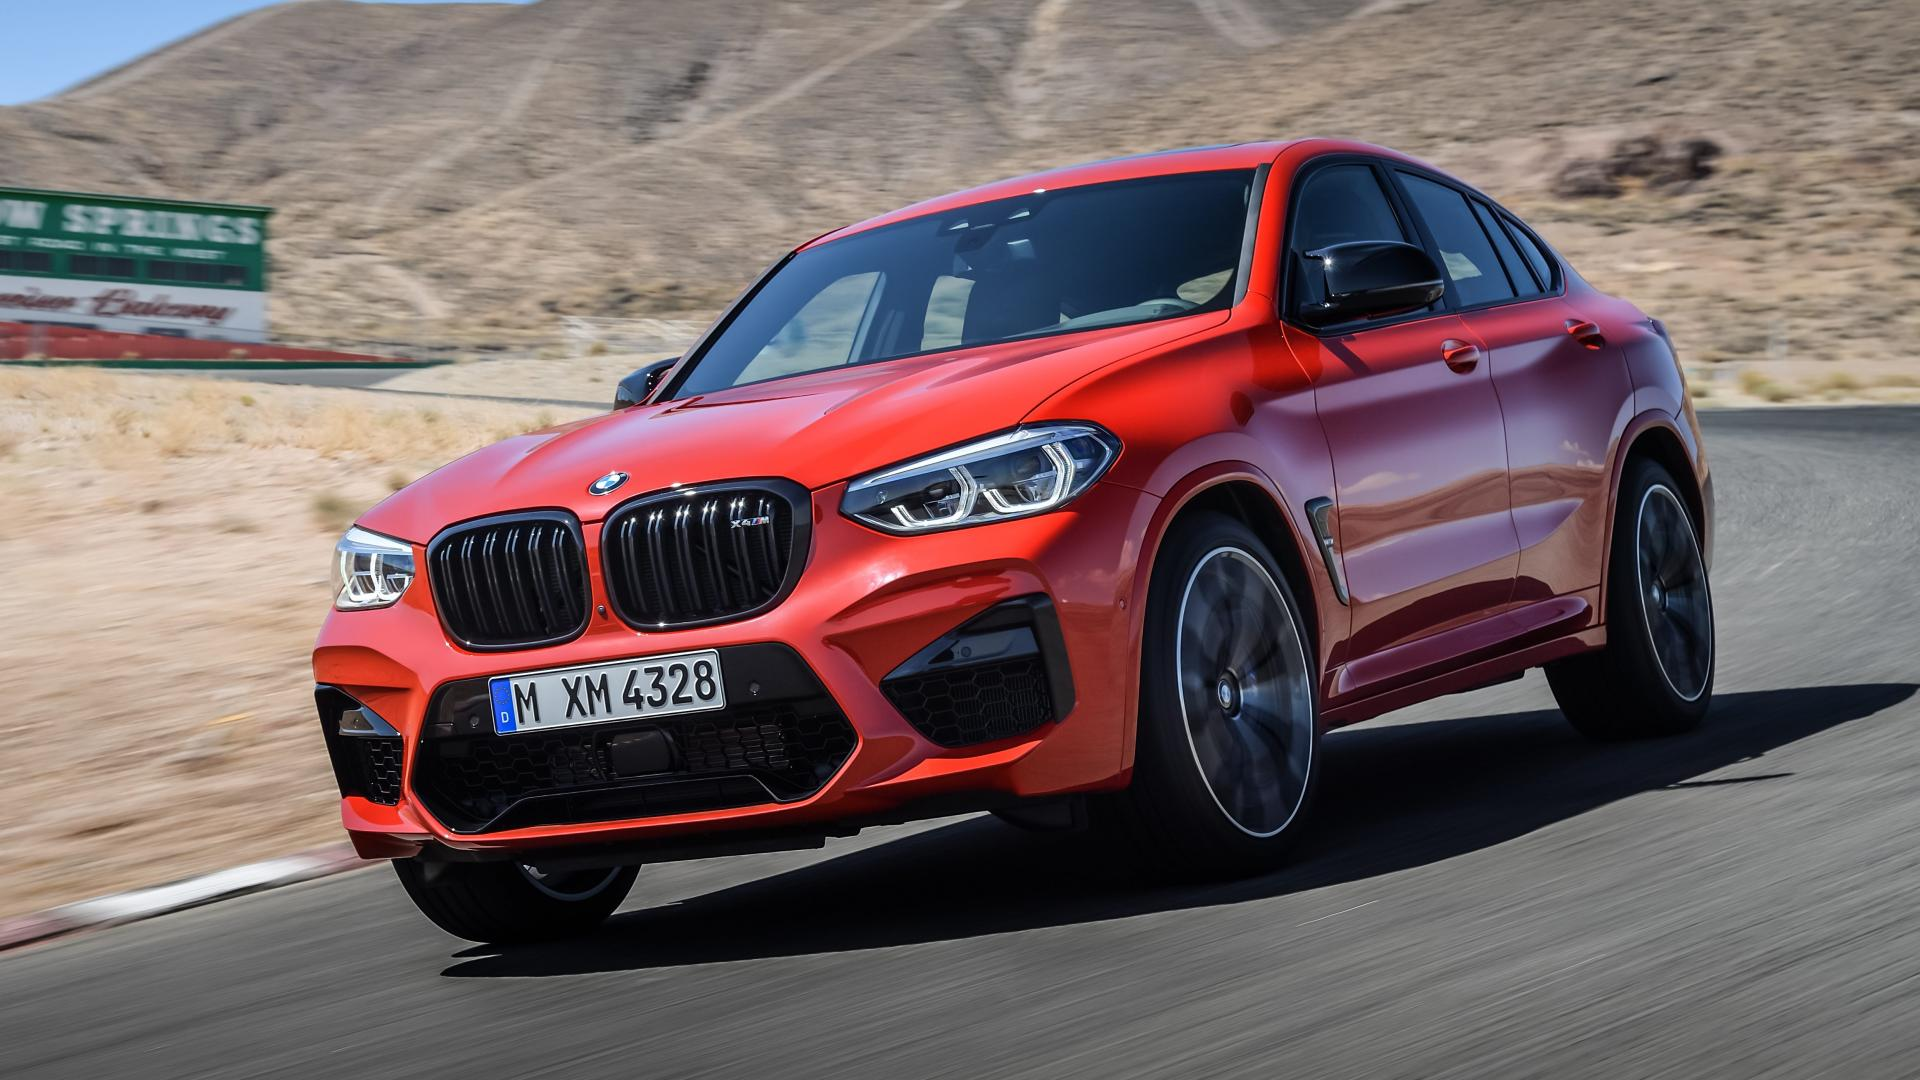 BMW X4 M Rood op Willow Springs circuit